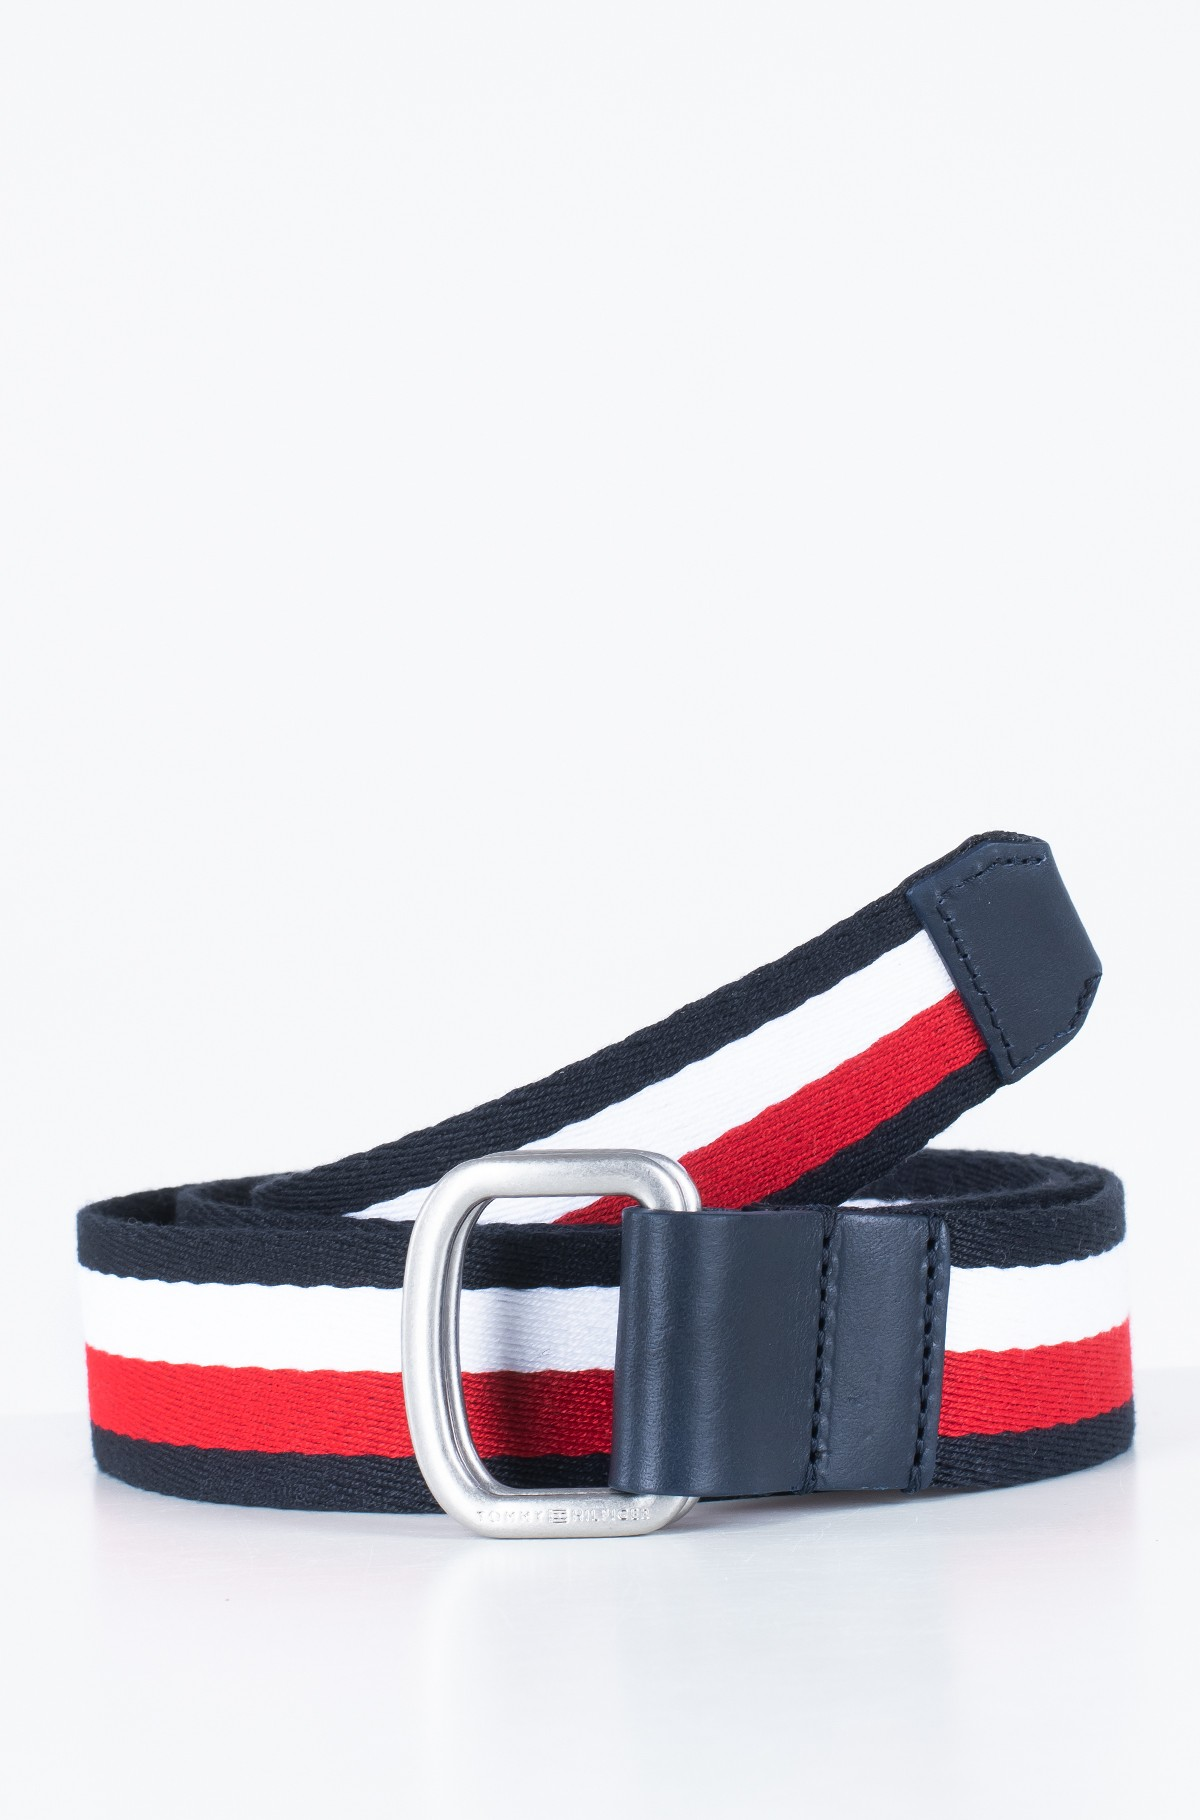 Diržas URBAN D-RING WEBBING BELT 3.5-full-1